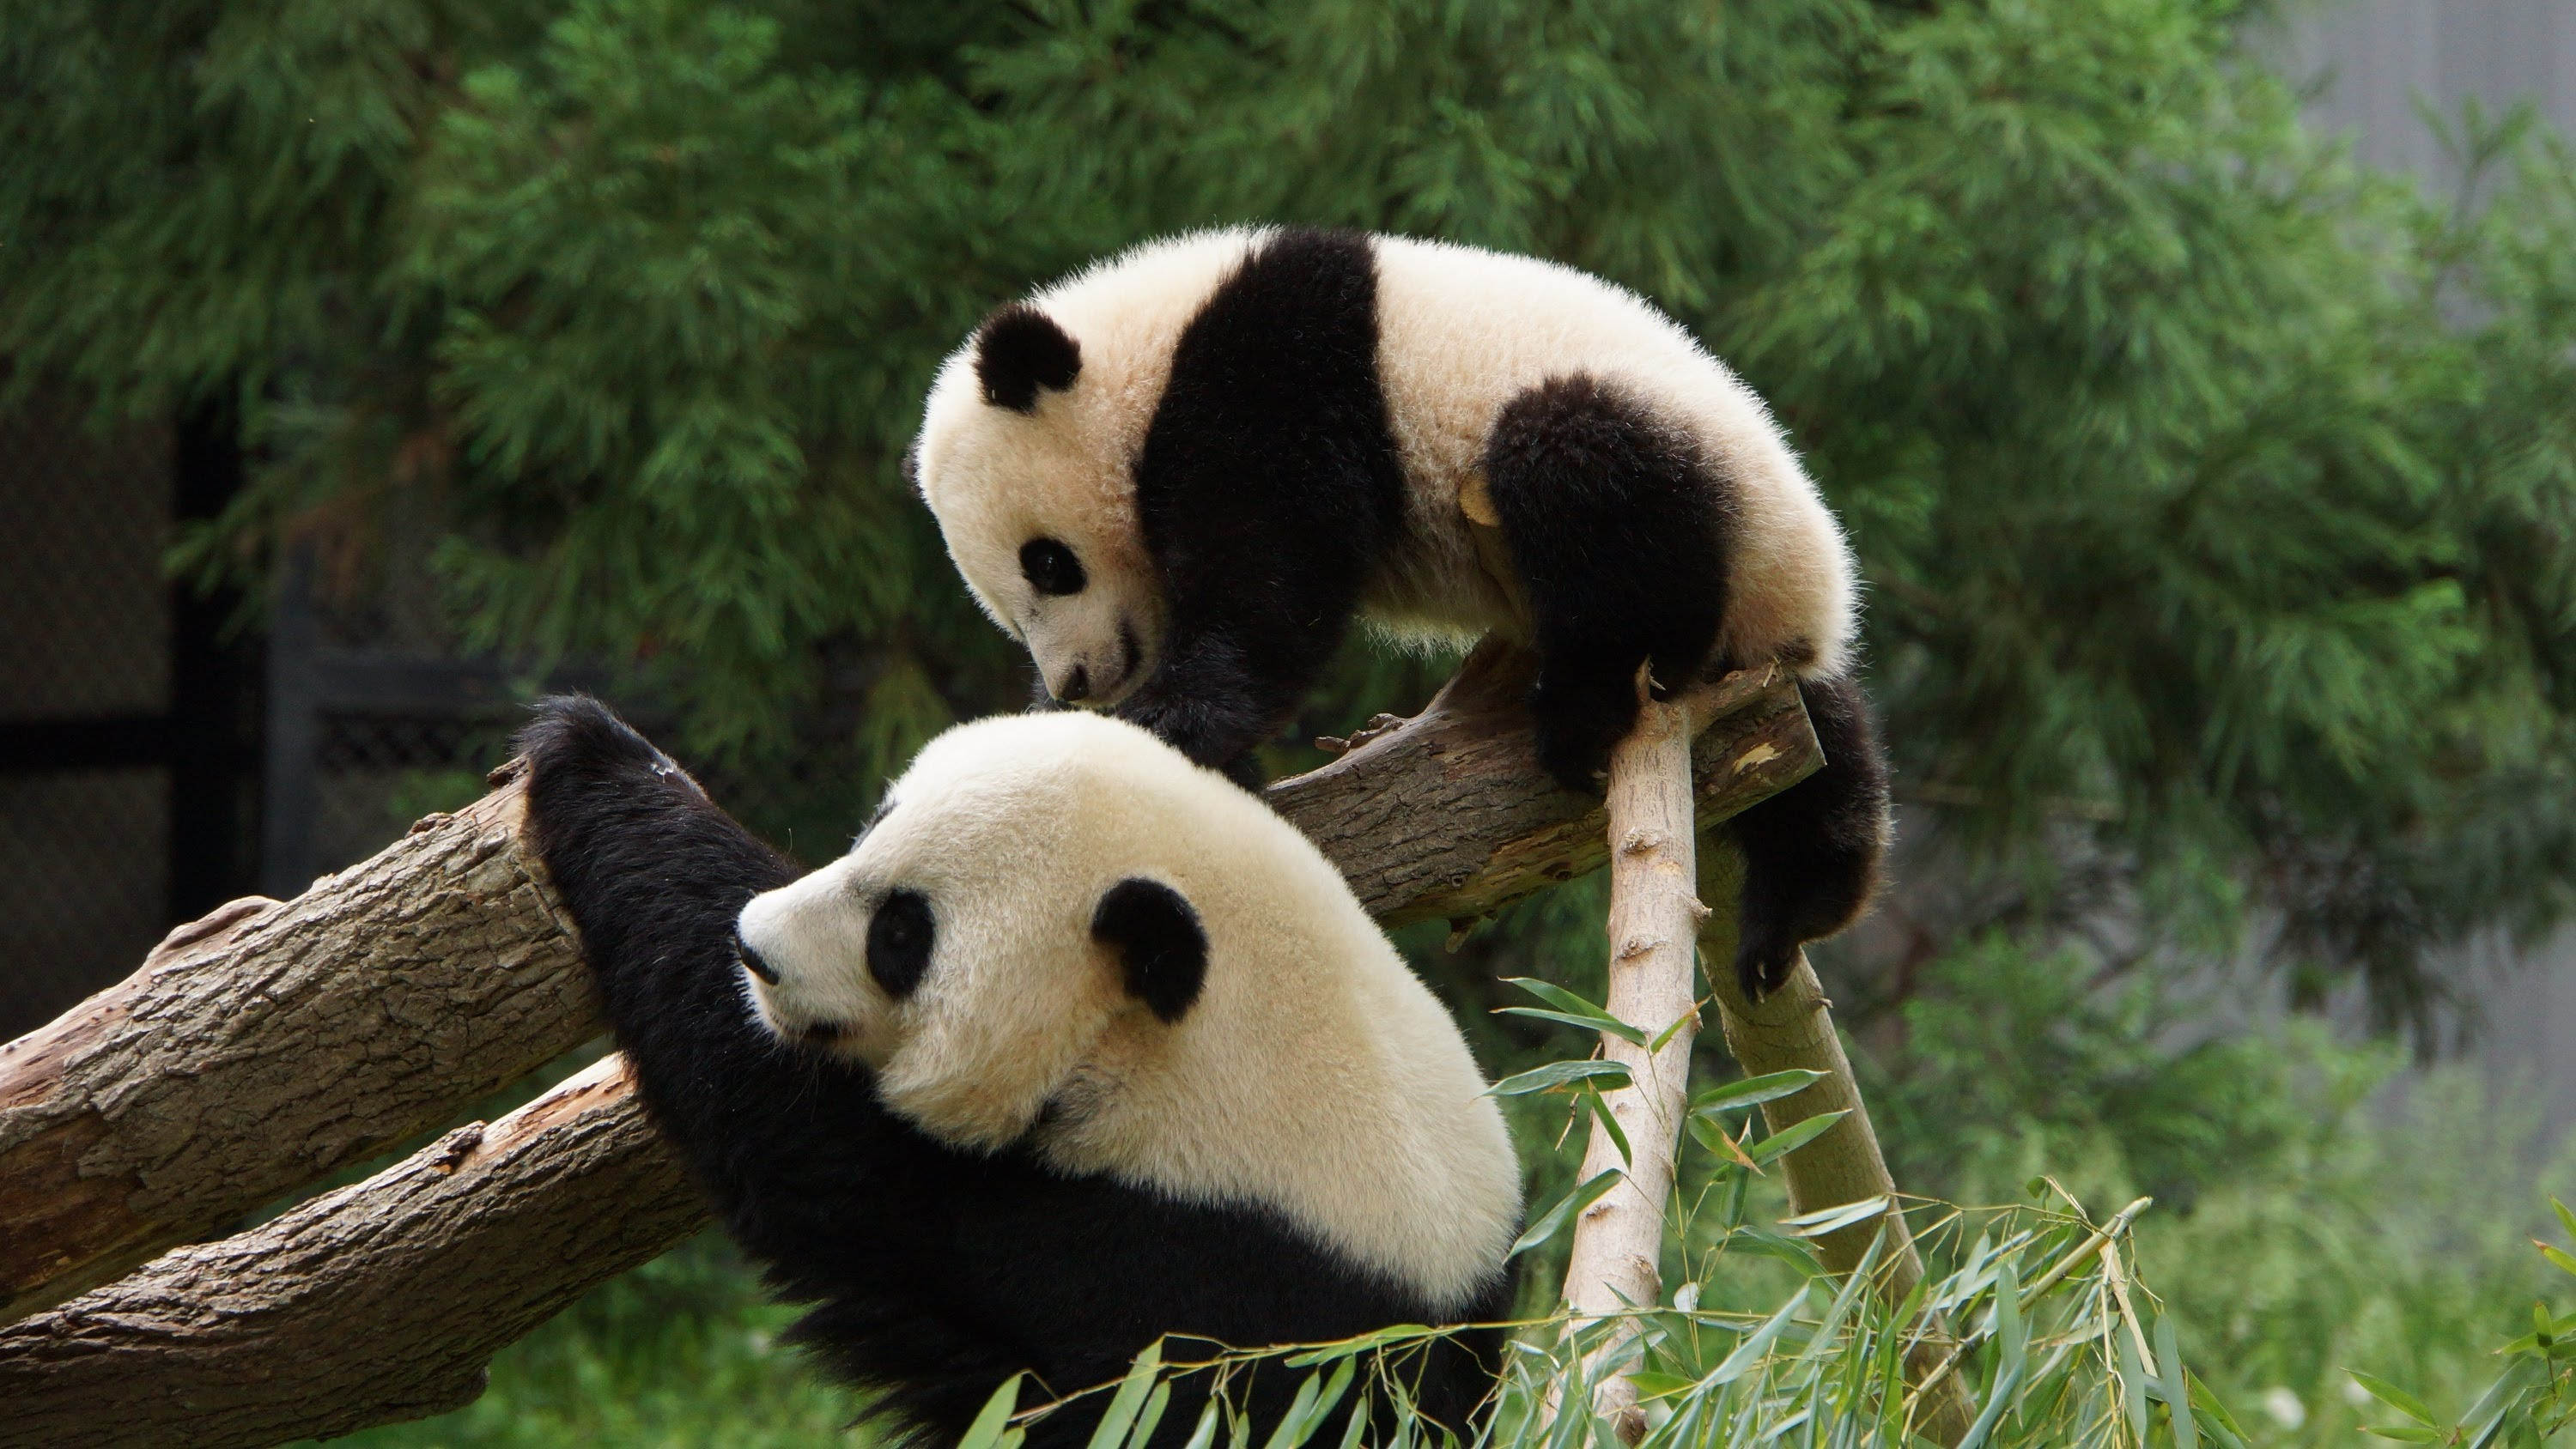 Where To Go To See A Giant Panda In The US